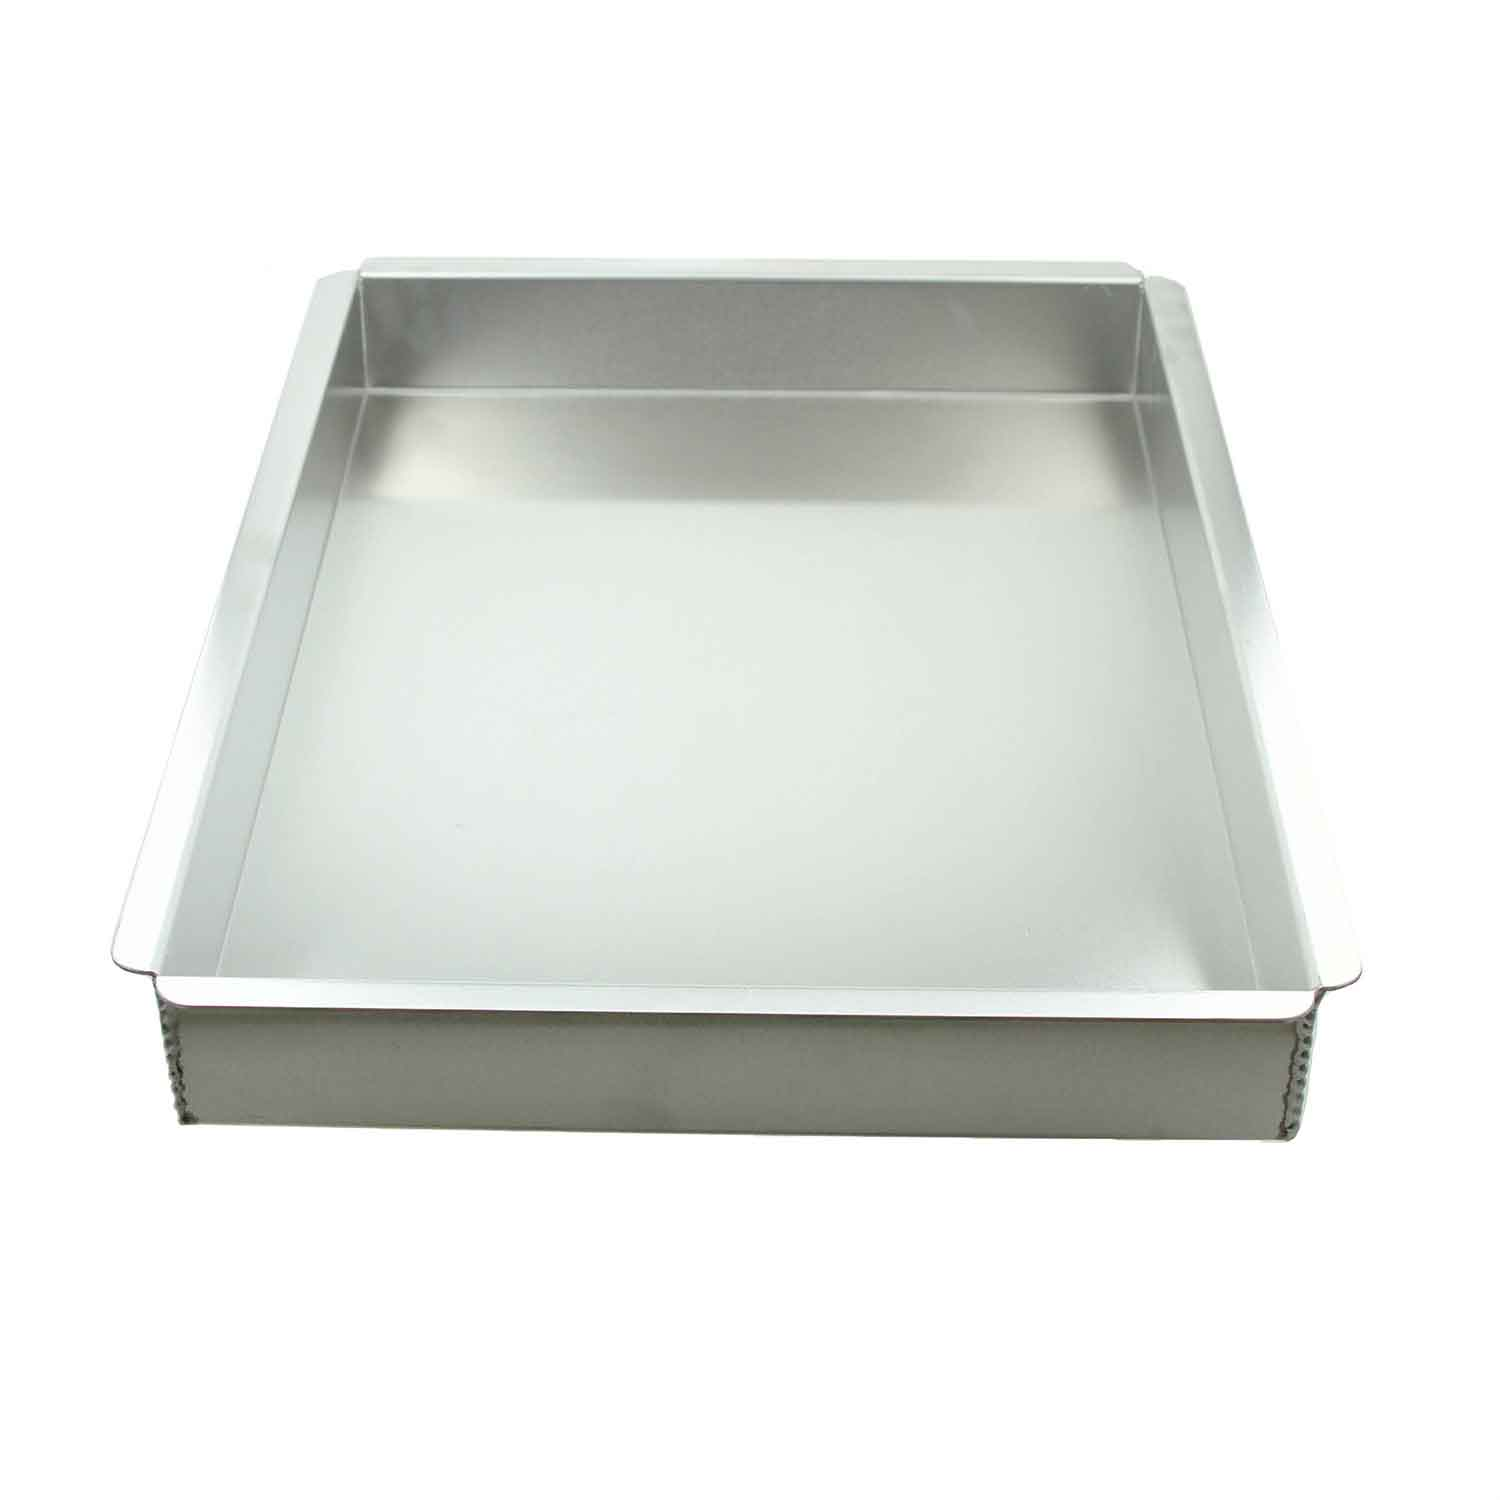 "12 X 18 X 2"" Magic Line Half Sheet Cake Pan"